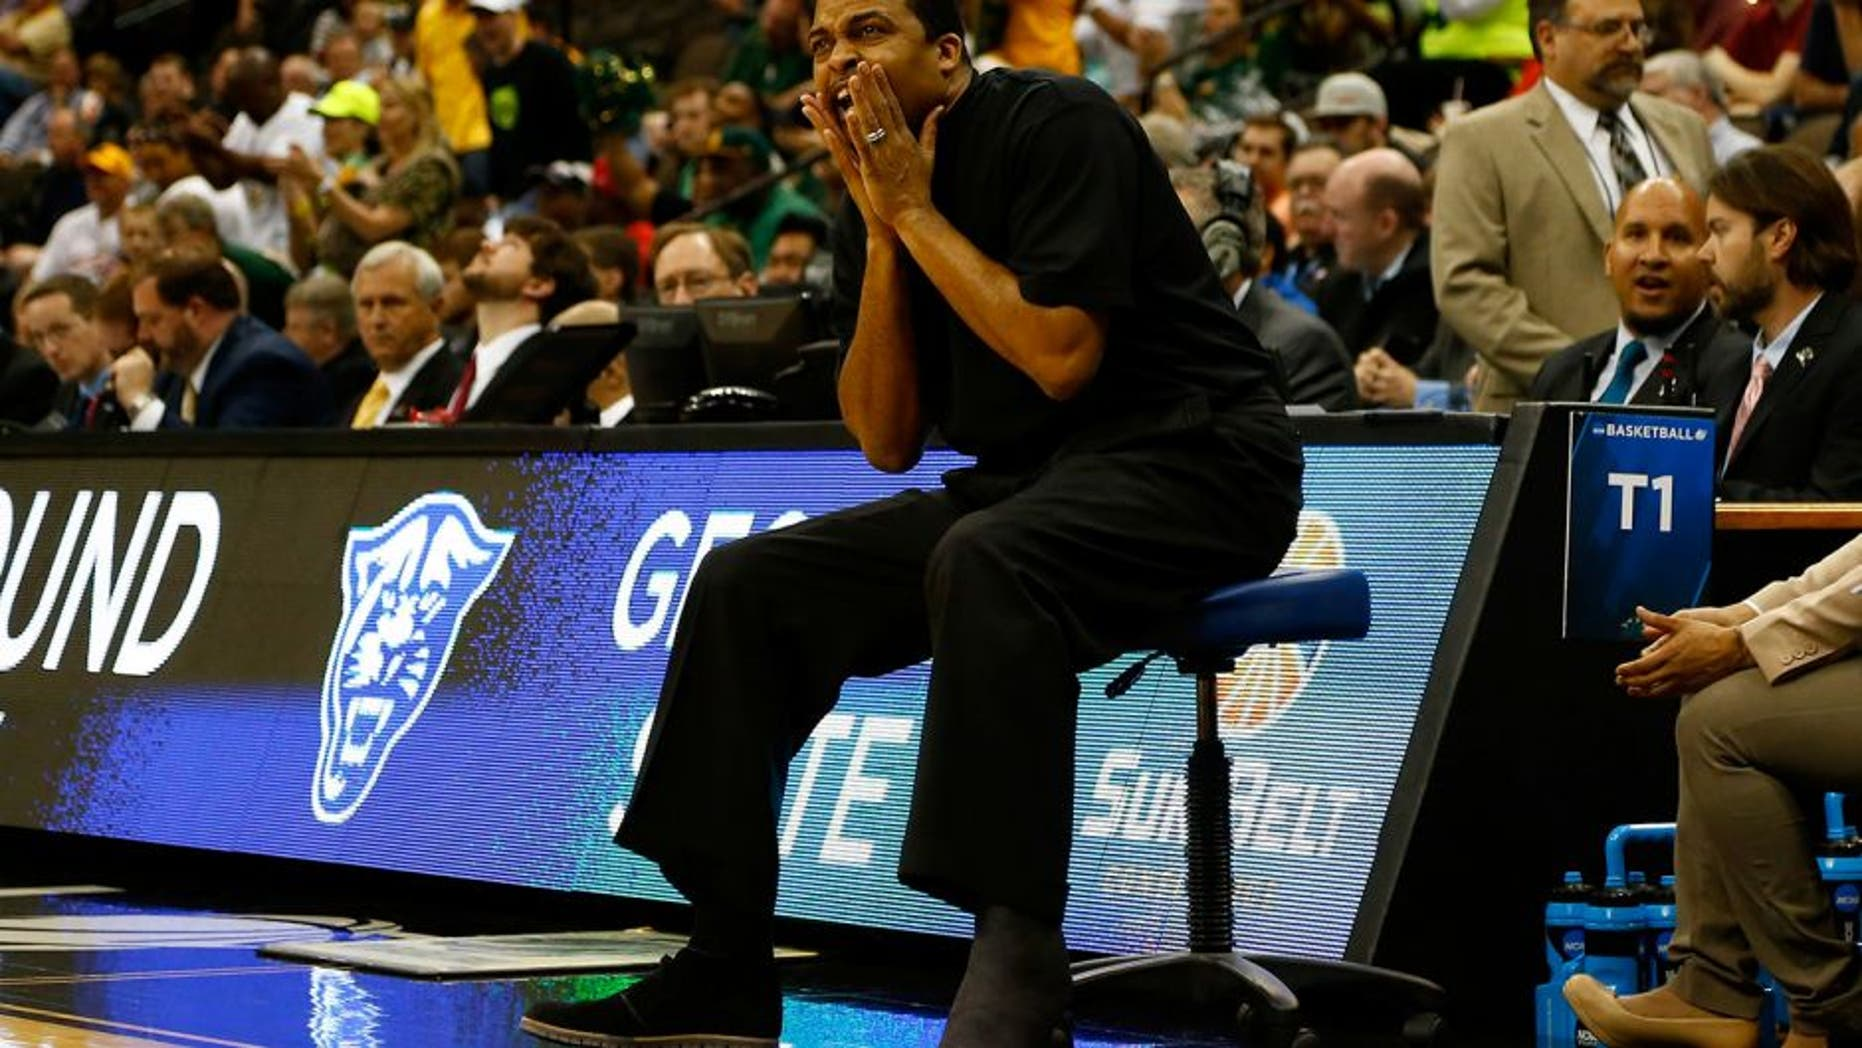 JACKSONVILLE, FL - MARCH 19: Head coach Ron Hunter of the Georgia State Panthers coaches from a chair during the second round of the 2015 NCAA Men's Basketball Tournament at Jacksonville Veterans Memorial Arena on March 19, 2015 in Jacksonville, Florida. Hunter injured his Achilles last week during the Sun Belt Conference tournament championship game. (Photo by Kevin C. Cox/Getty Images)